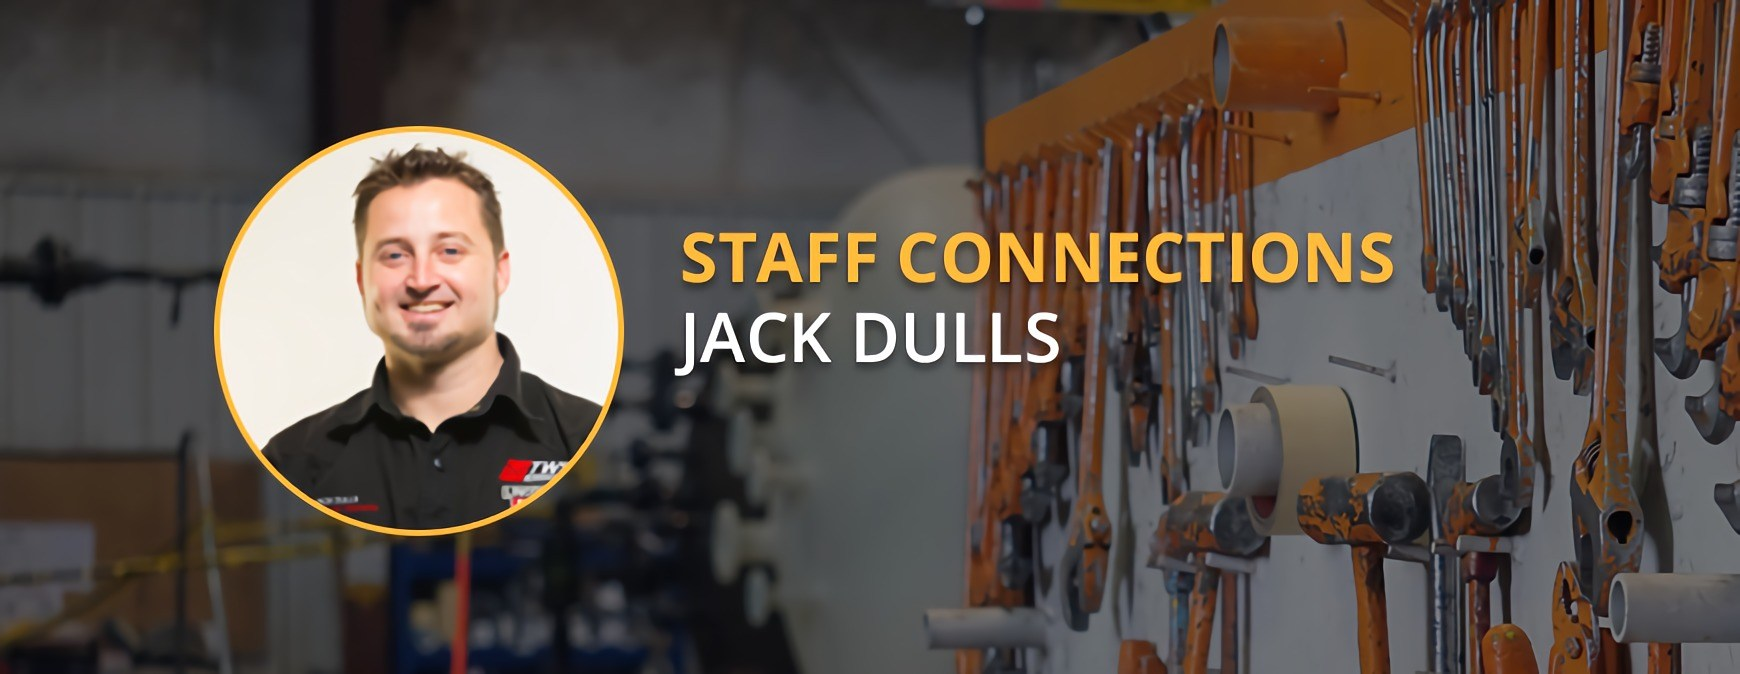 Jack Dulls Staff Connection